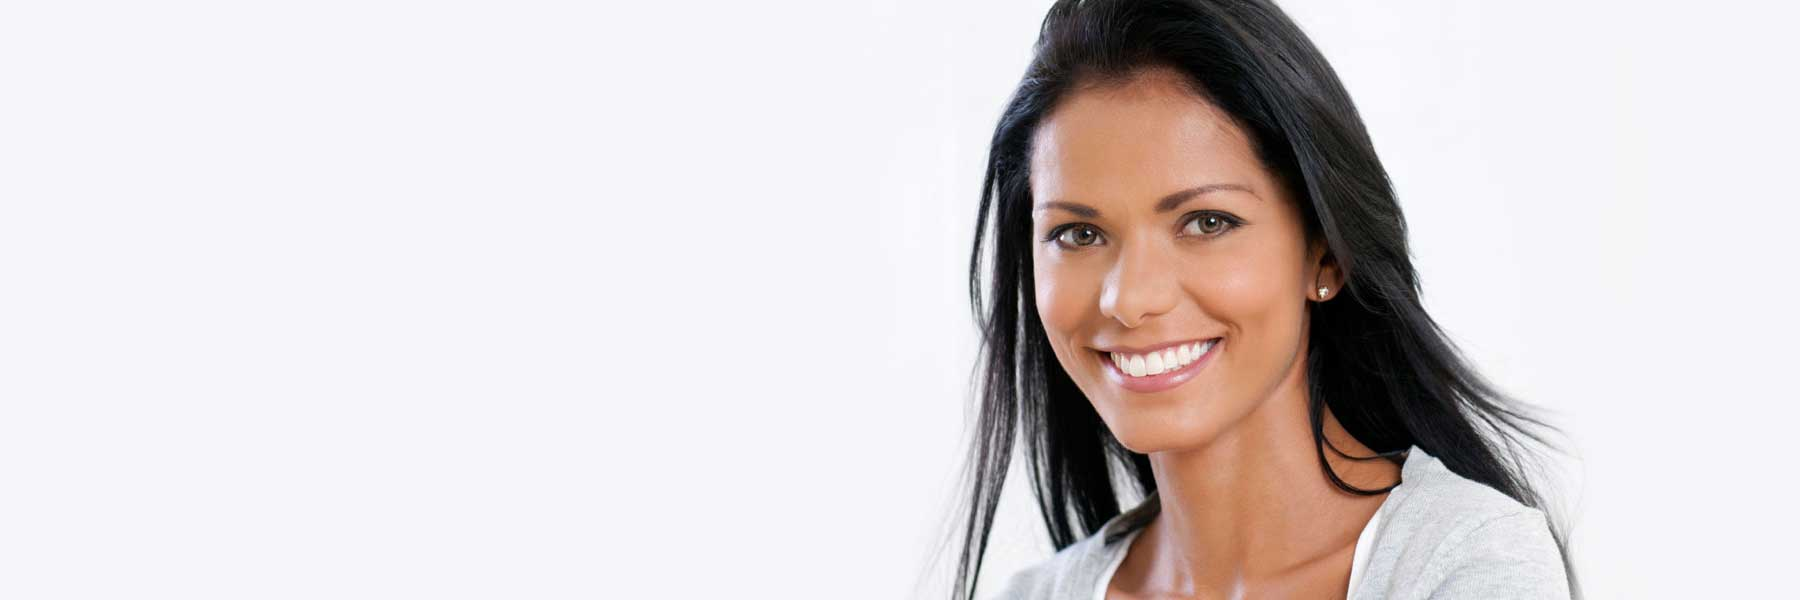 Teeth Whitening banner image